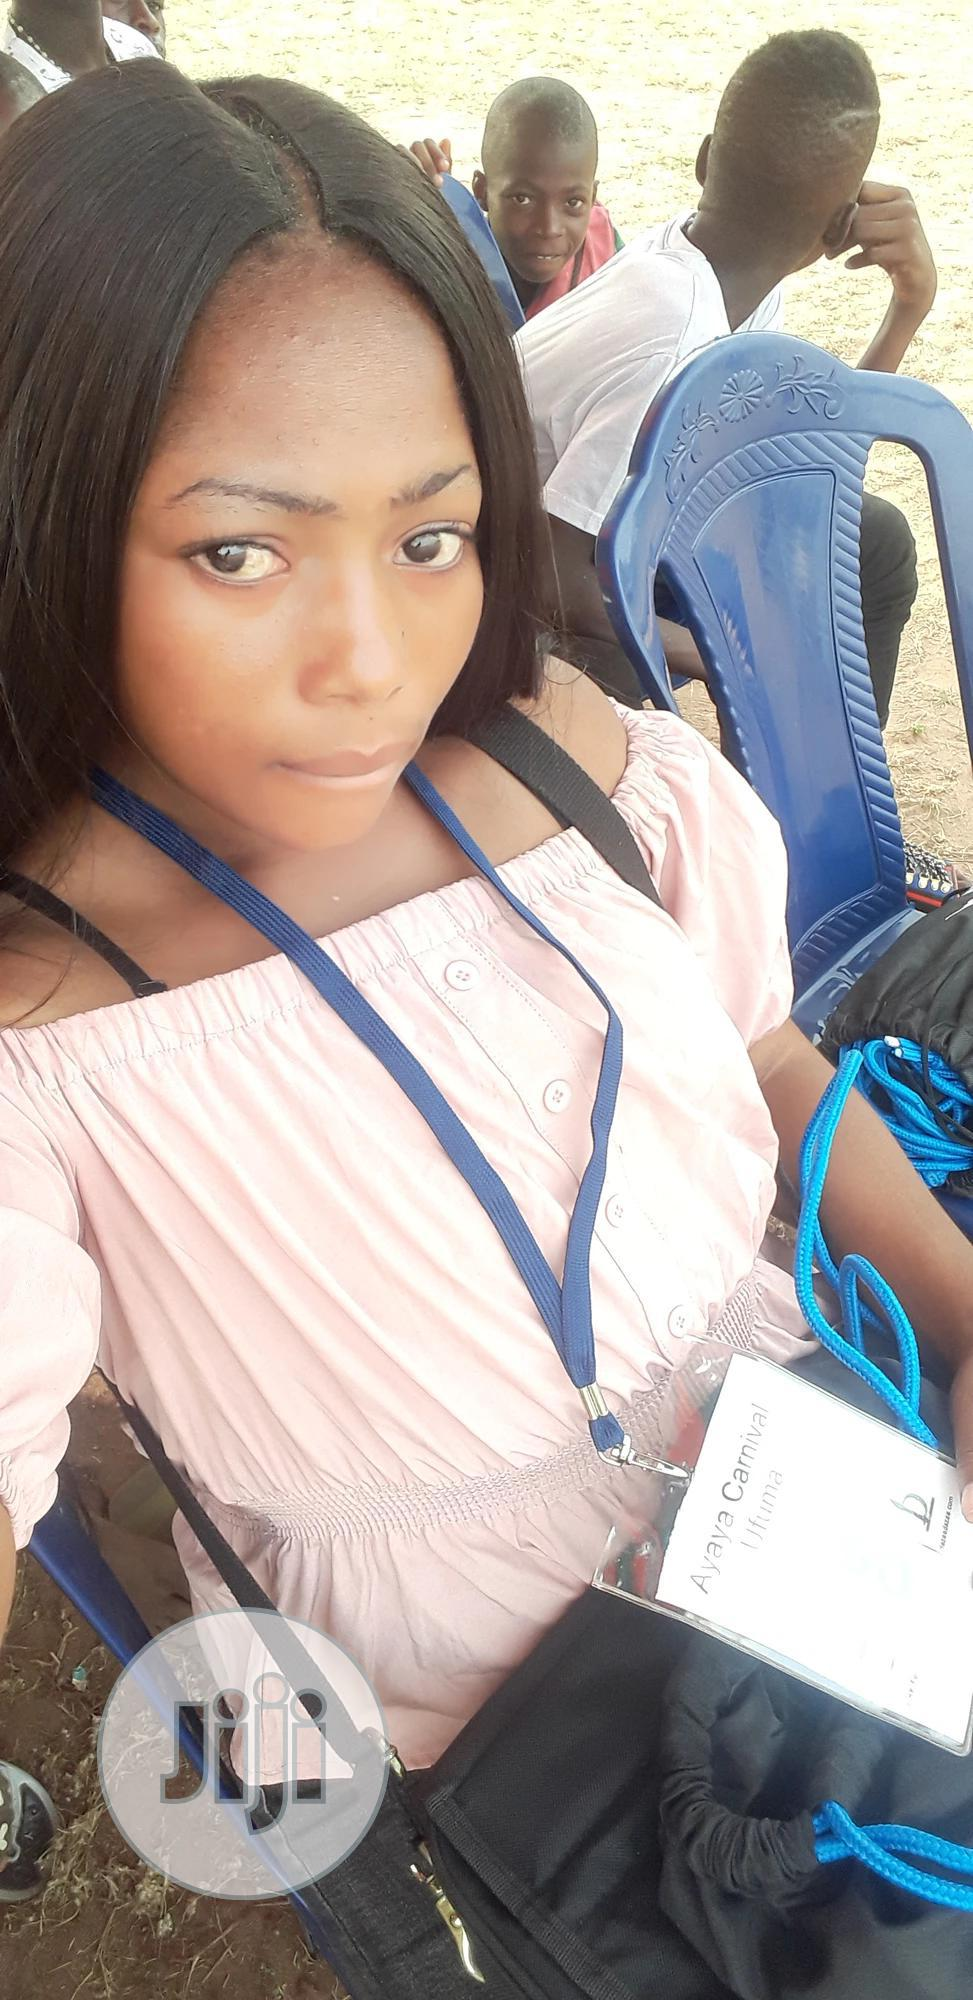 Clerical & Administrative CV   Clerical & Administrative CVs for sale in Orumba, Anambra State, Nigeria